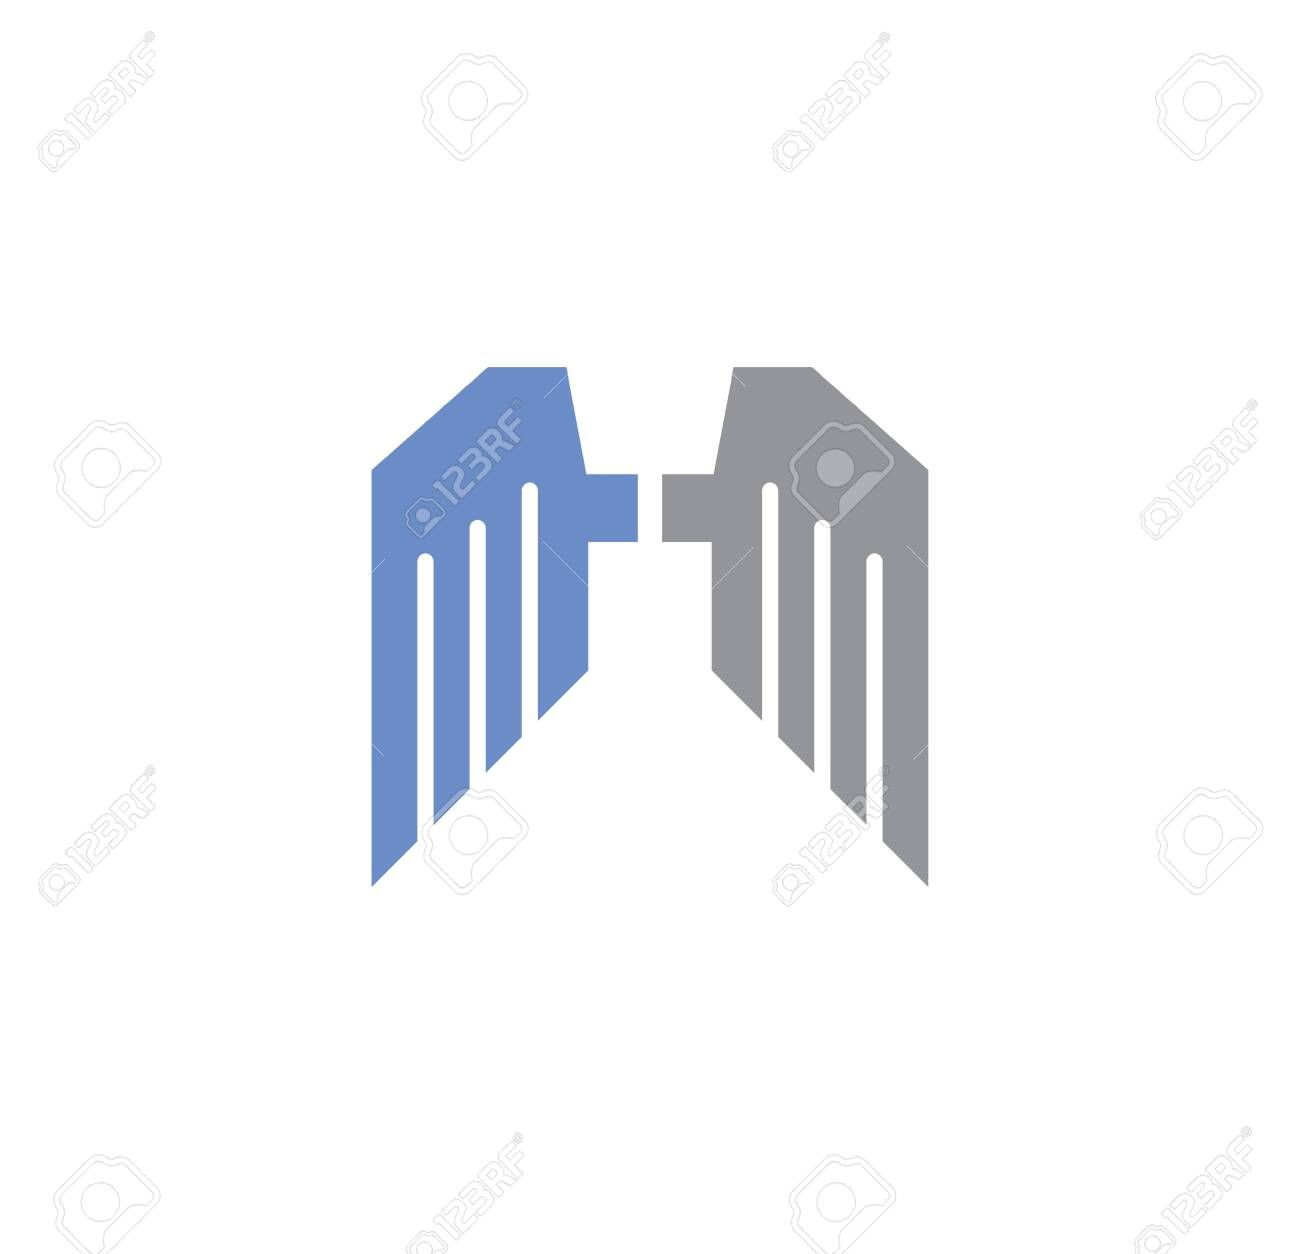 Wing related icon on background for graphic and web design. Creative illustration concept symbol for web or mobile app Illustration , #SPONSORED, #graphic, #web, #design, #background, #Wing